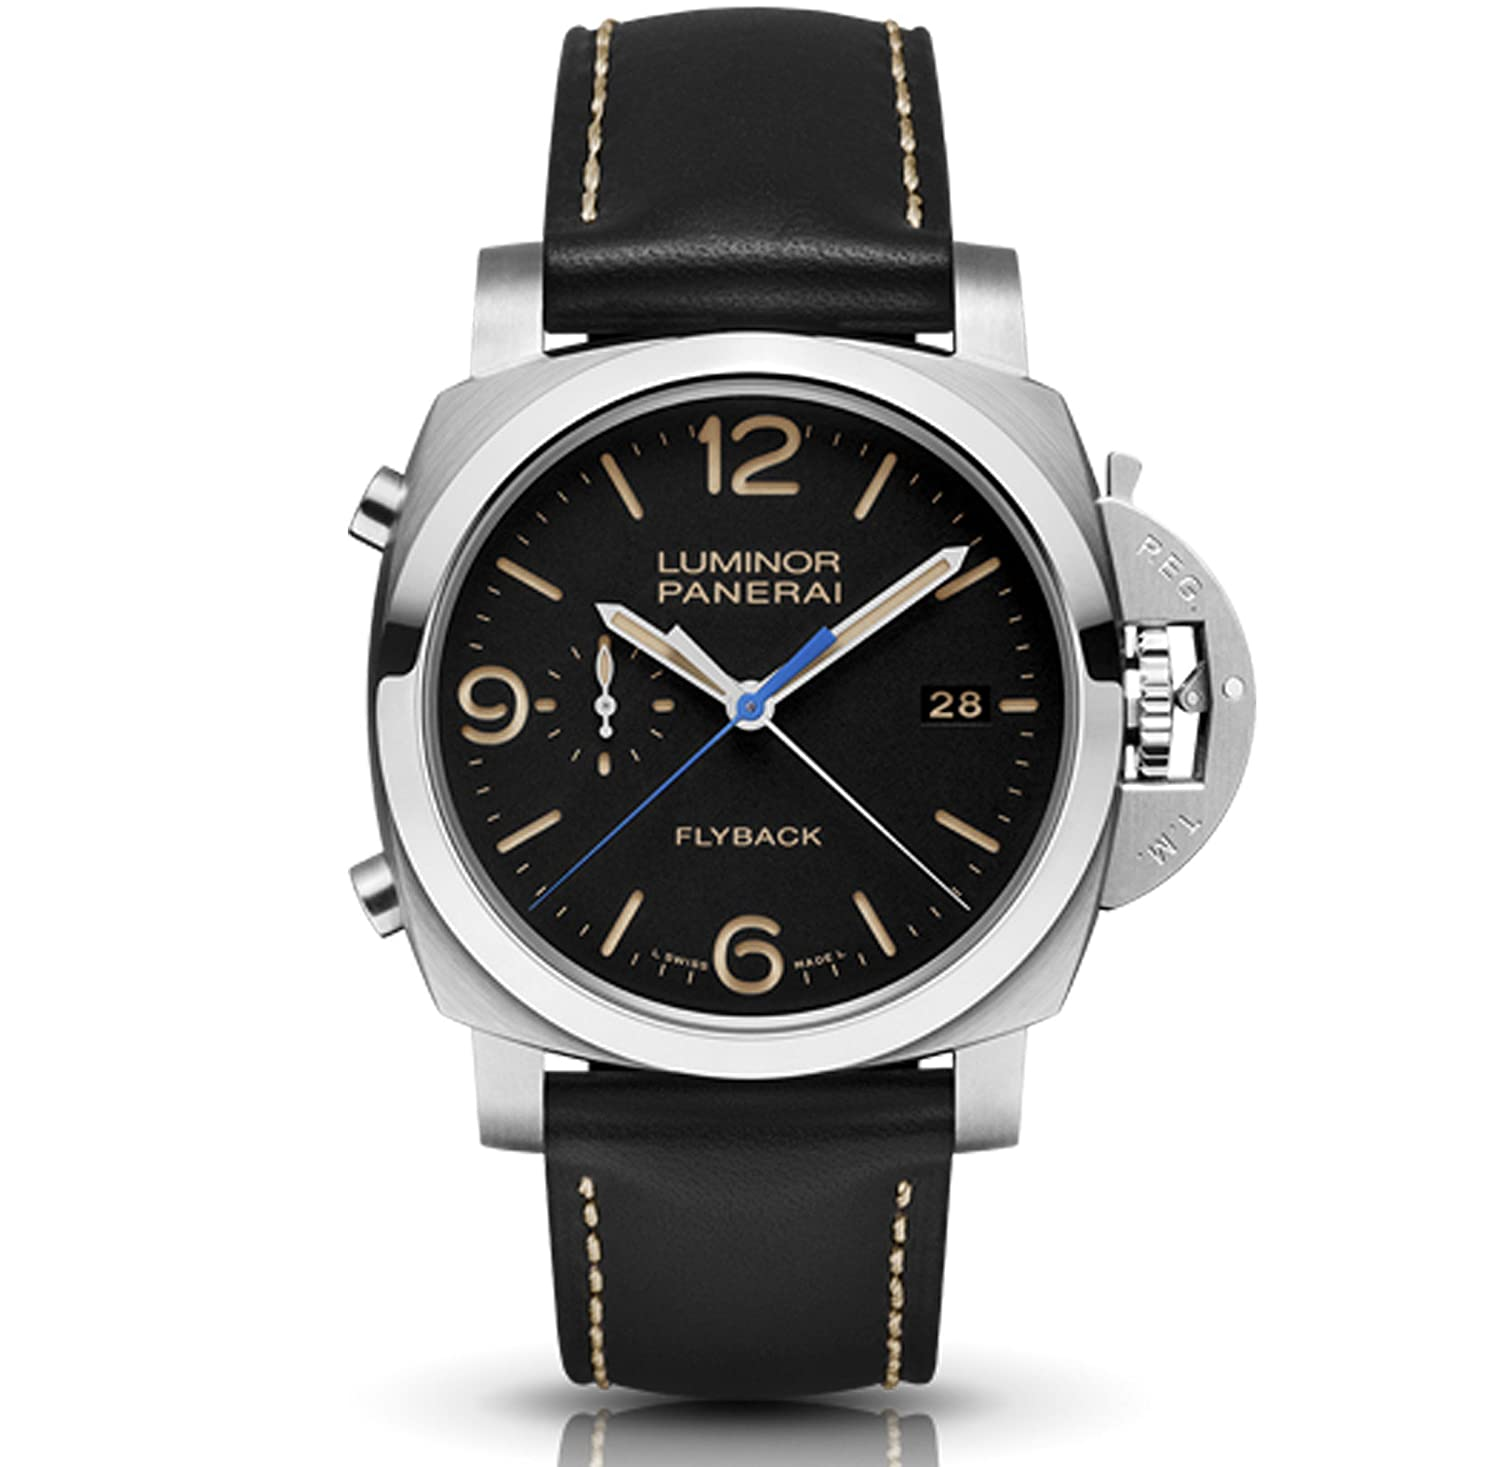 Panerai Swiss Watches: Overview, Features, Views and Reviews 1